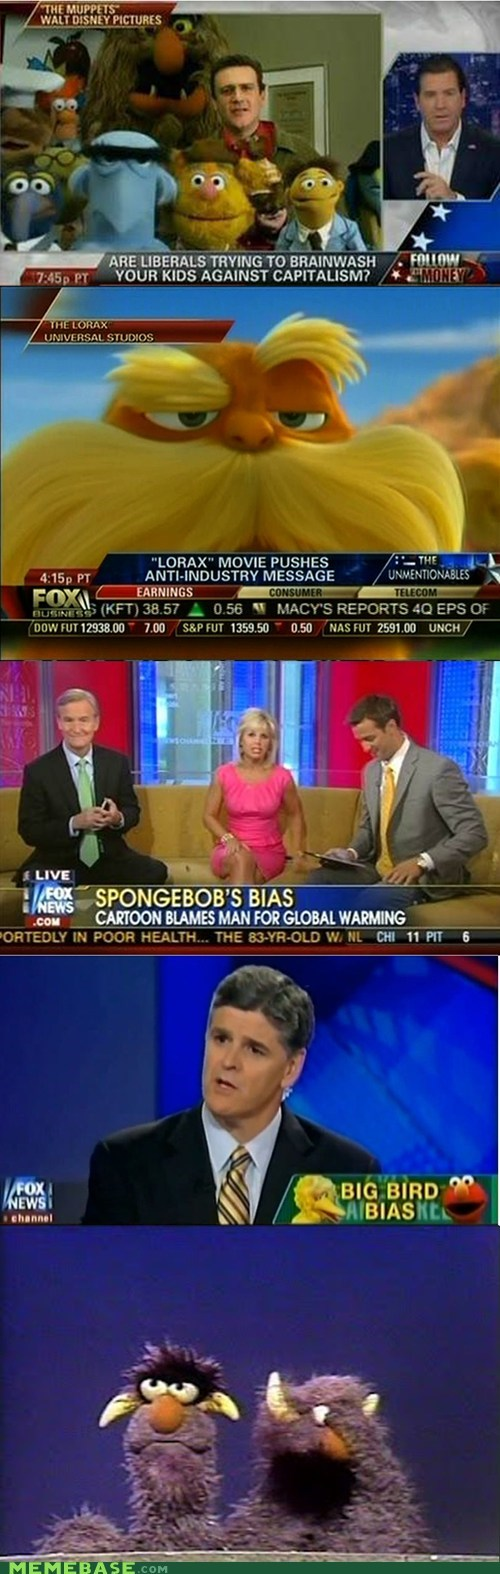 childish facepalm fox news muppets politics TV - 6175990272